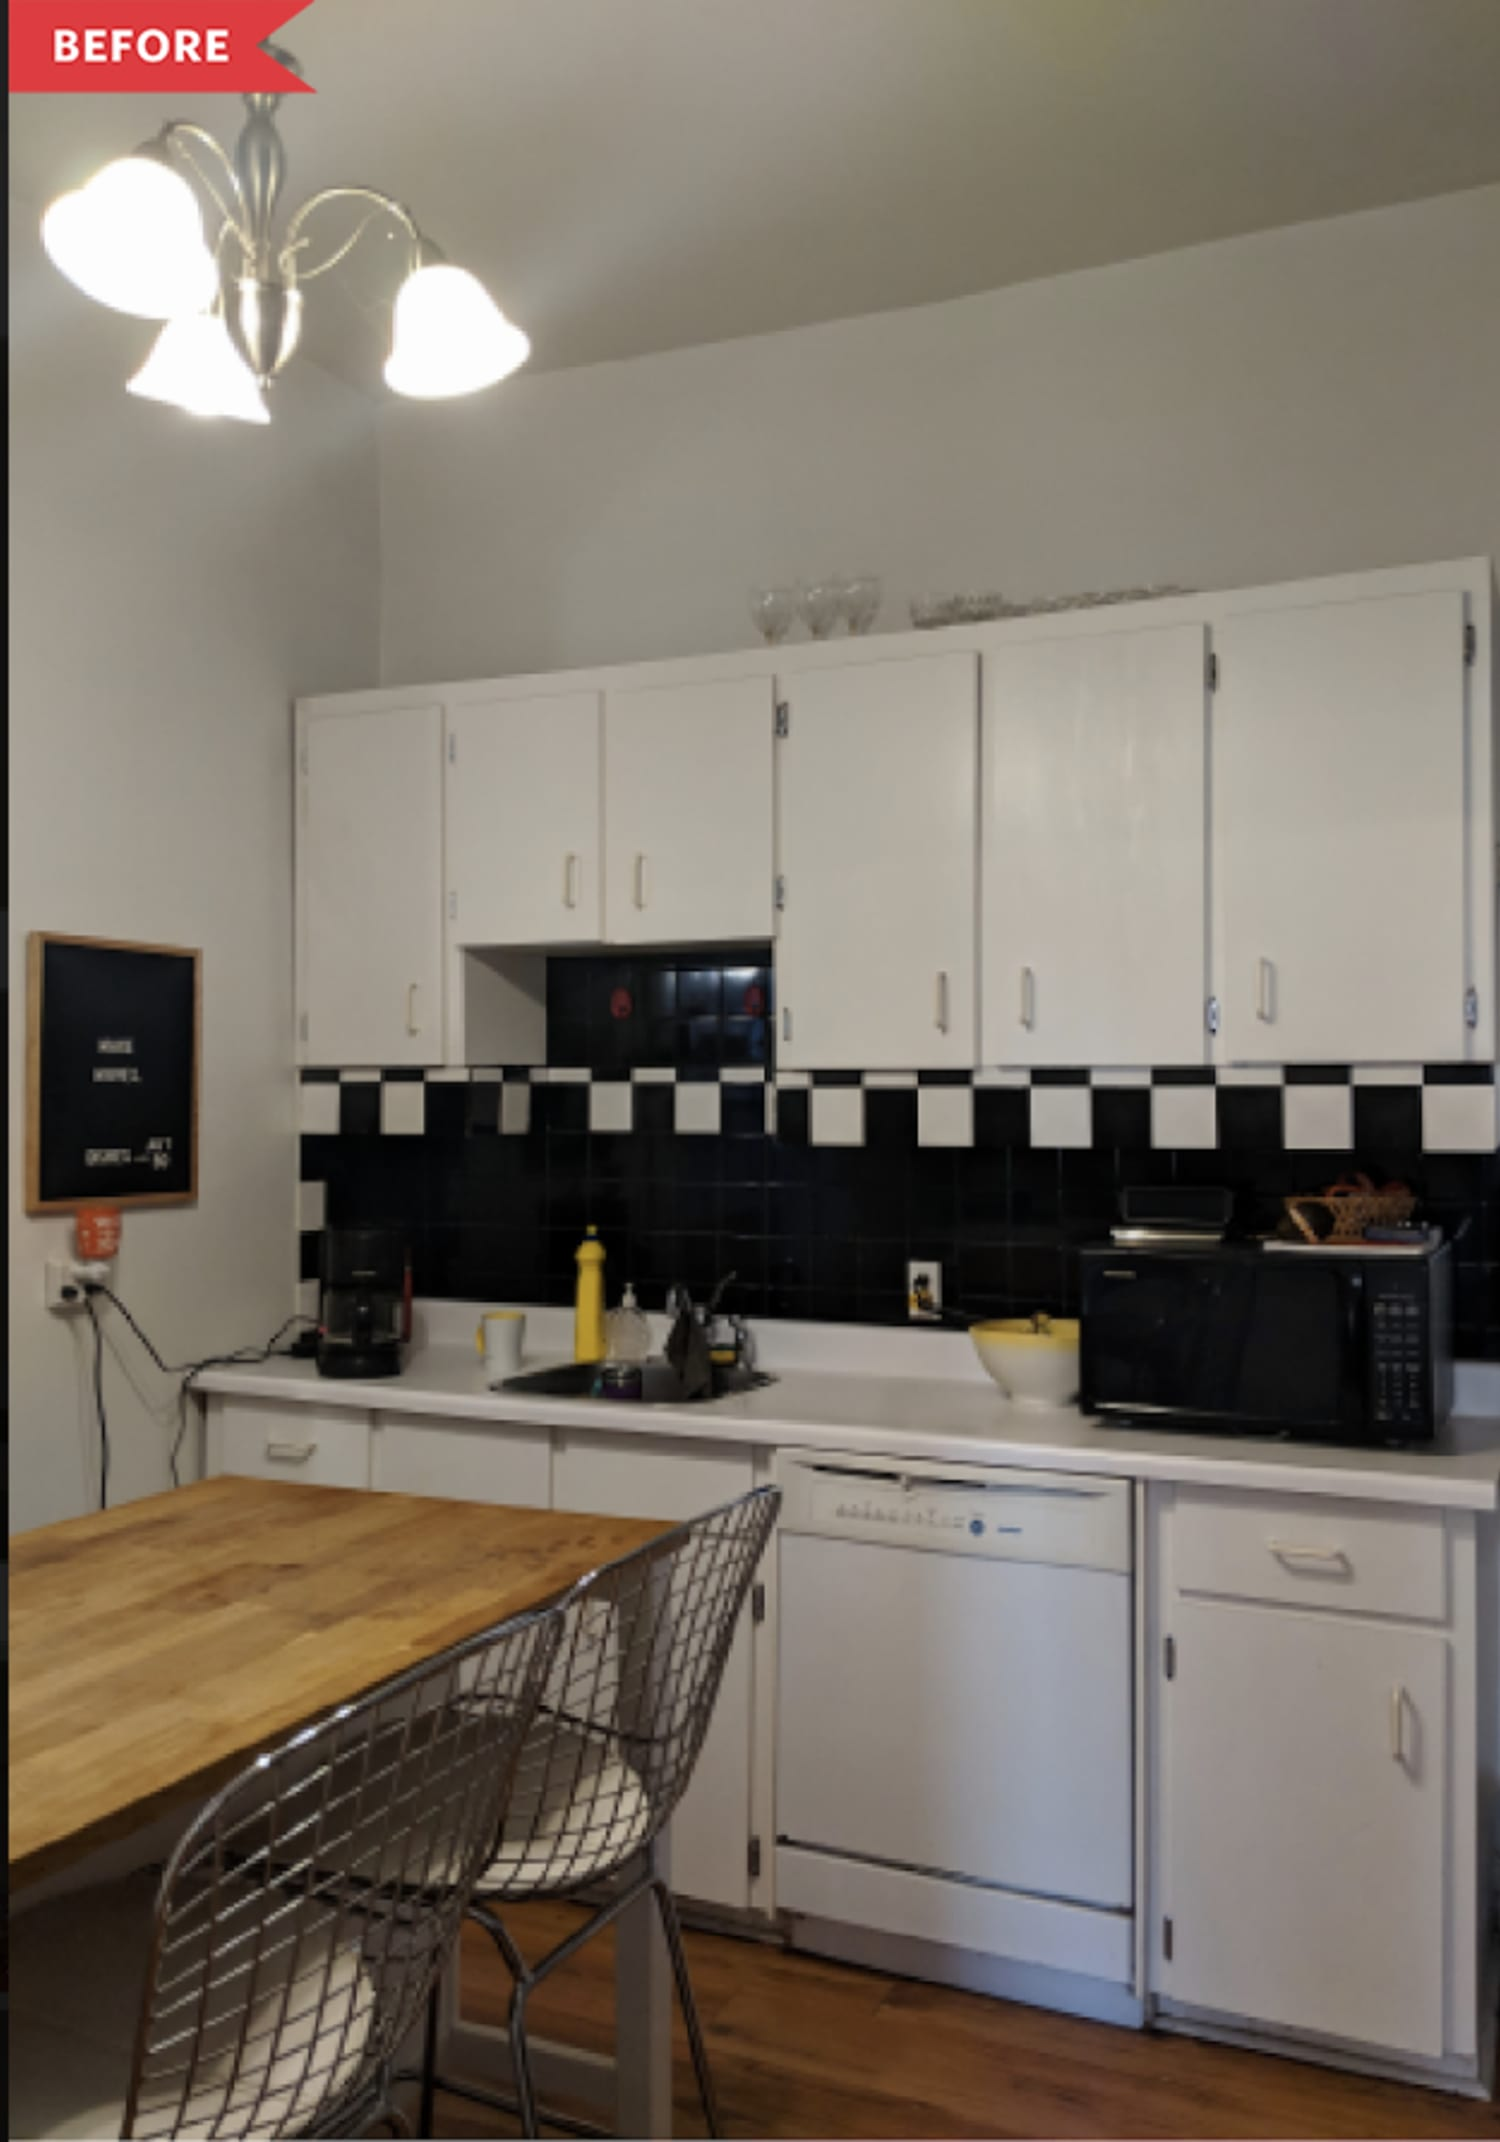 Before and After: A $1000 Rental Kitchen With One Luxe-Looking IKEA Hack